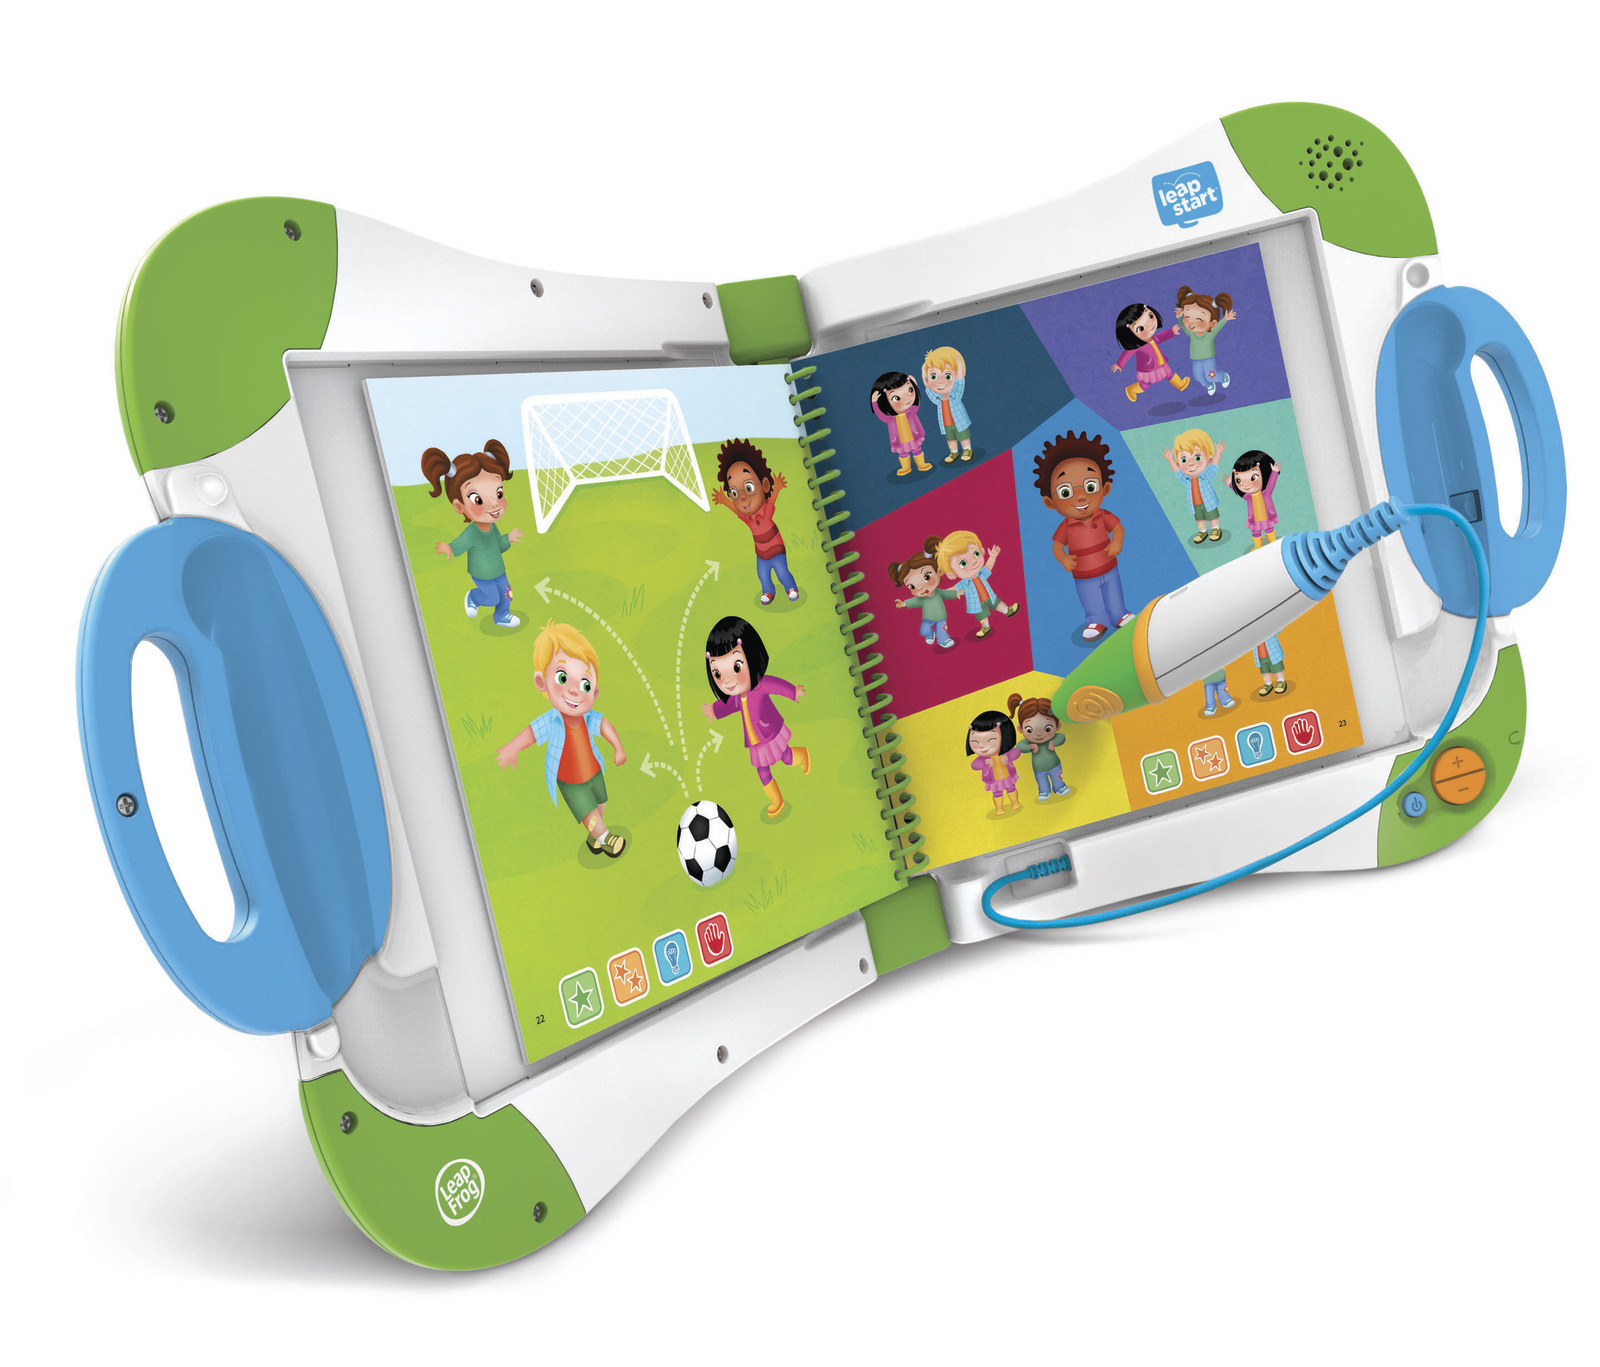 LeapStart - Interactive Learning System (Green) image